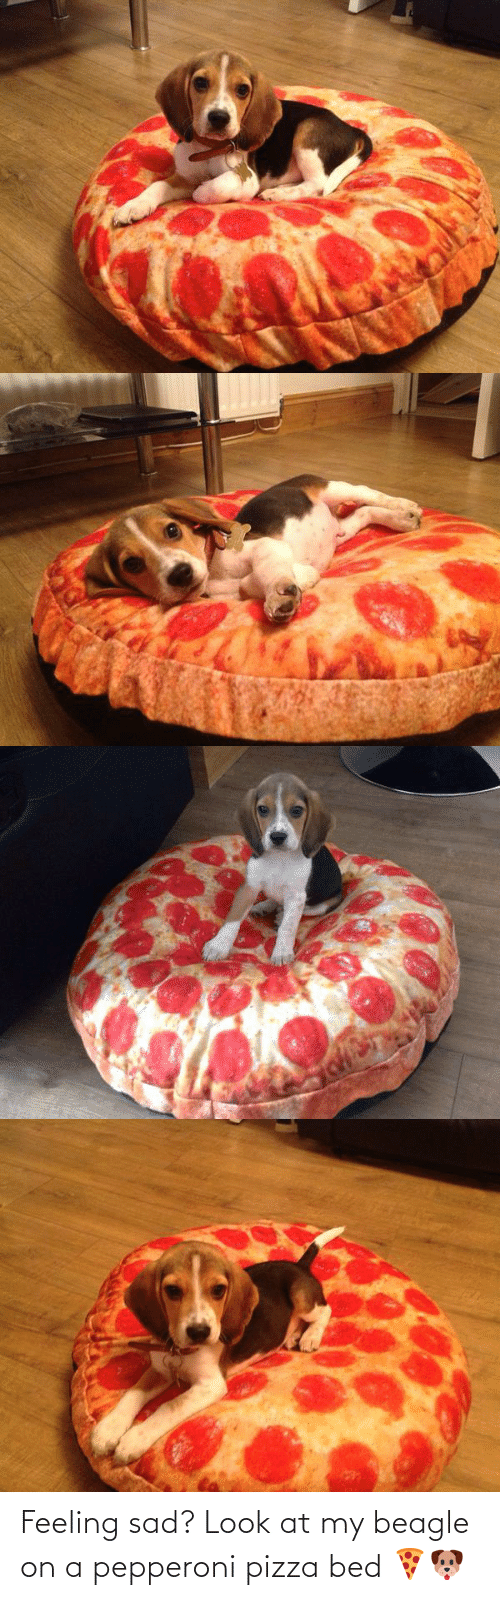 look: Feeling sad? Look at my beagle on a pepperoni pizza bed 🍕🐶